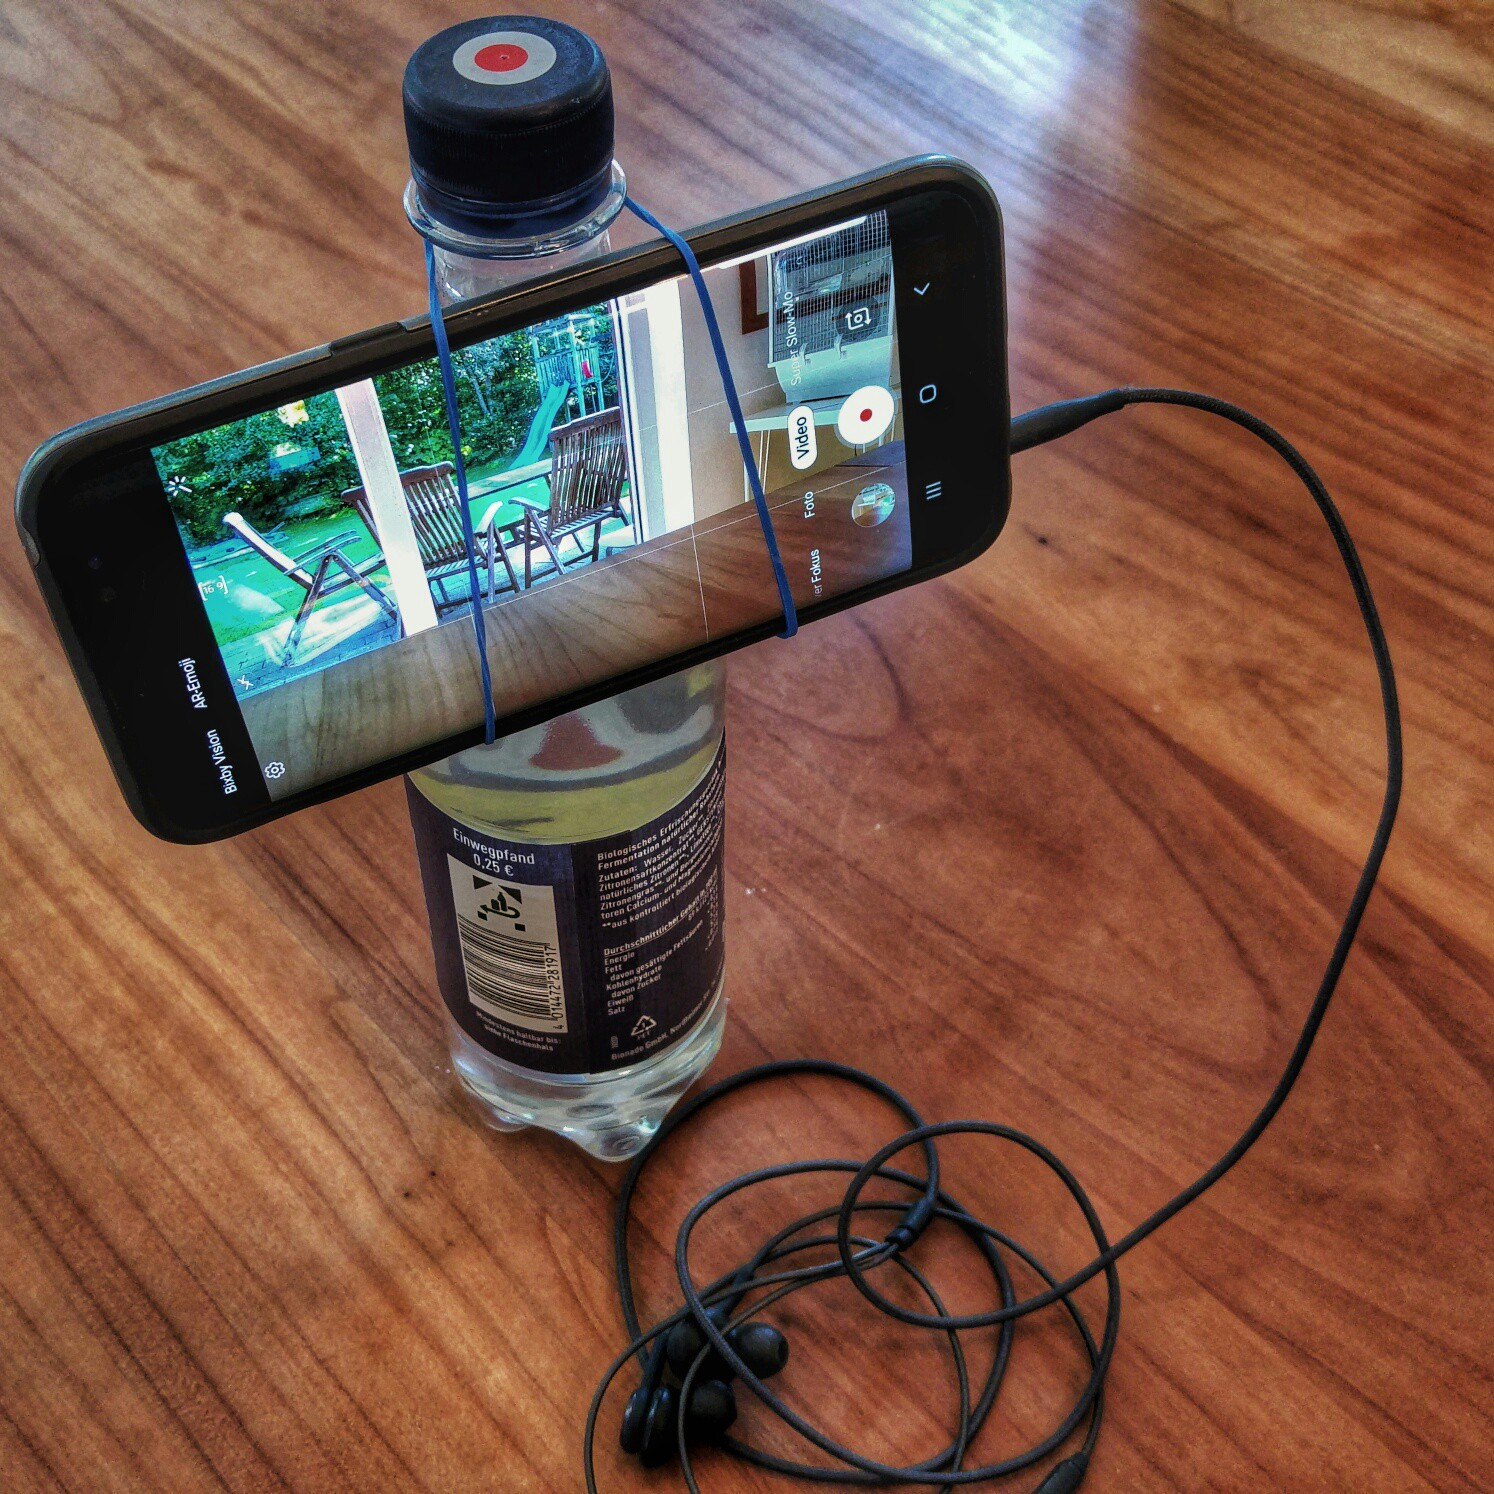 Bernhard Lill: with a rubber band and a bottle you can improvise a smartphone rig and make your videos more stable.